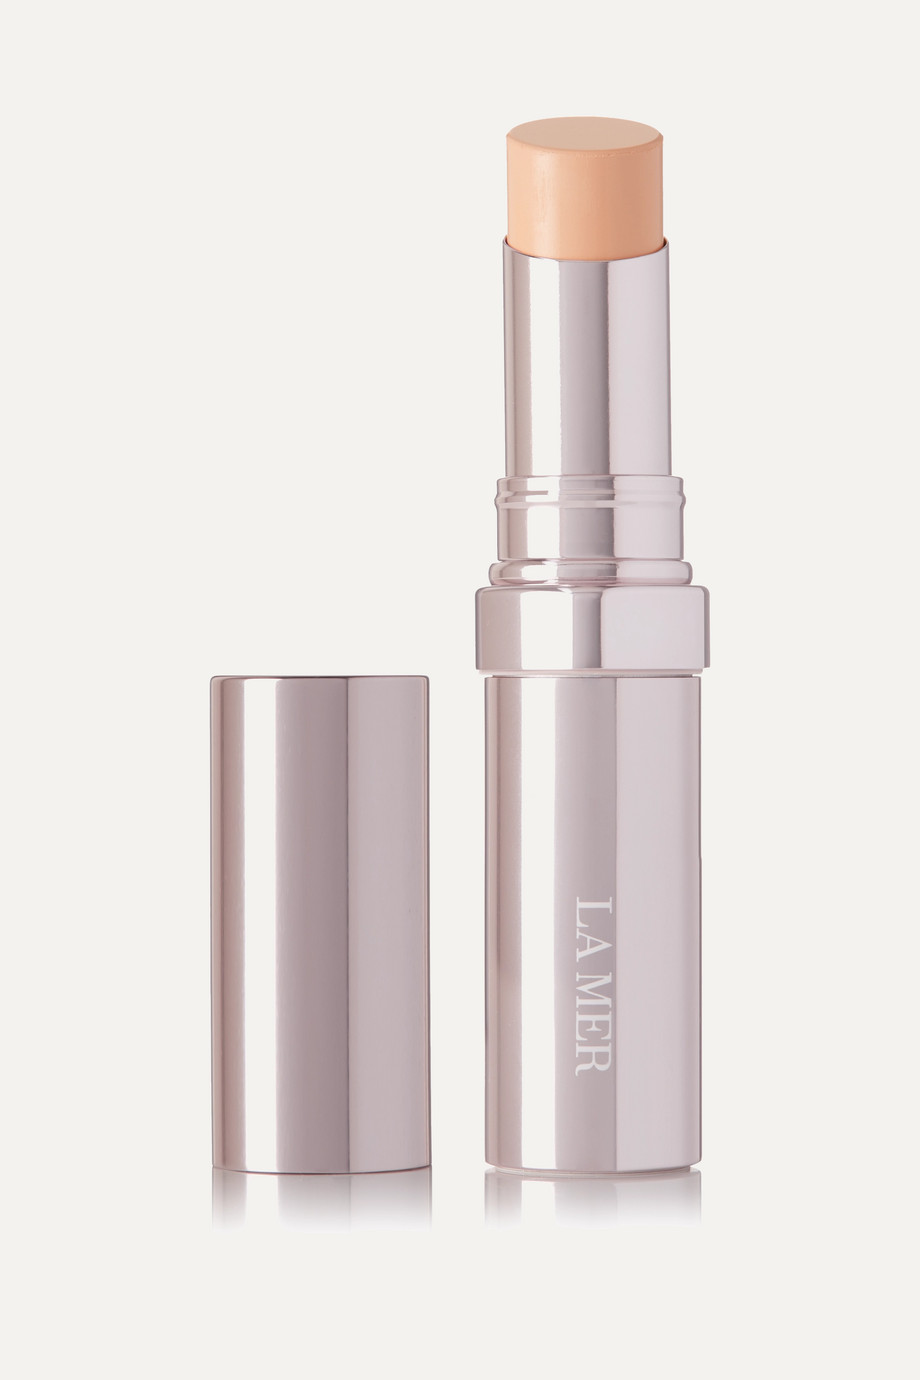 La Mer The Concealer - Medium Deep